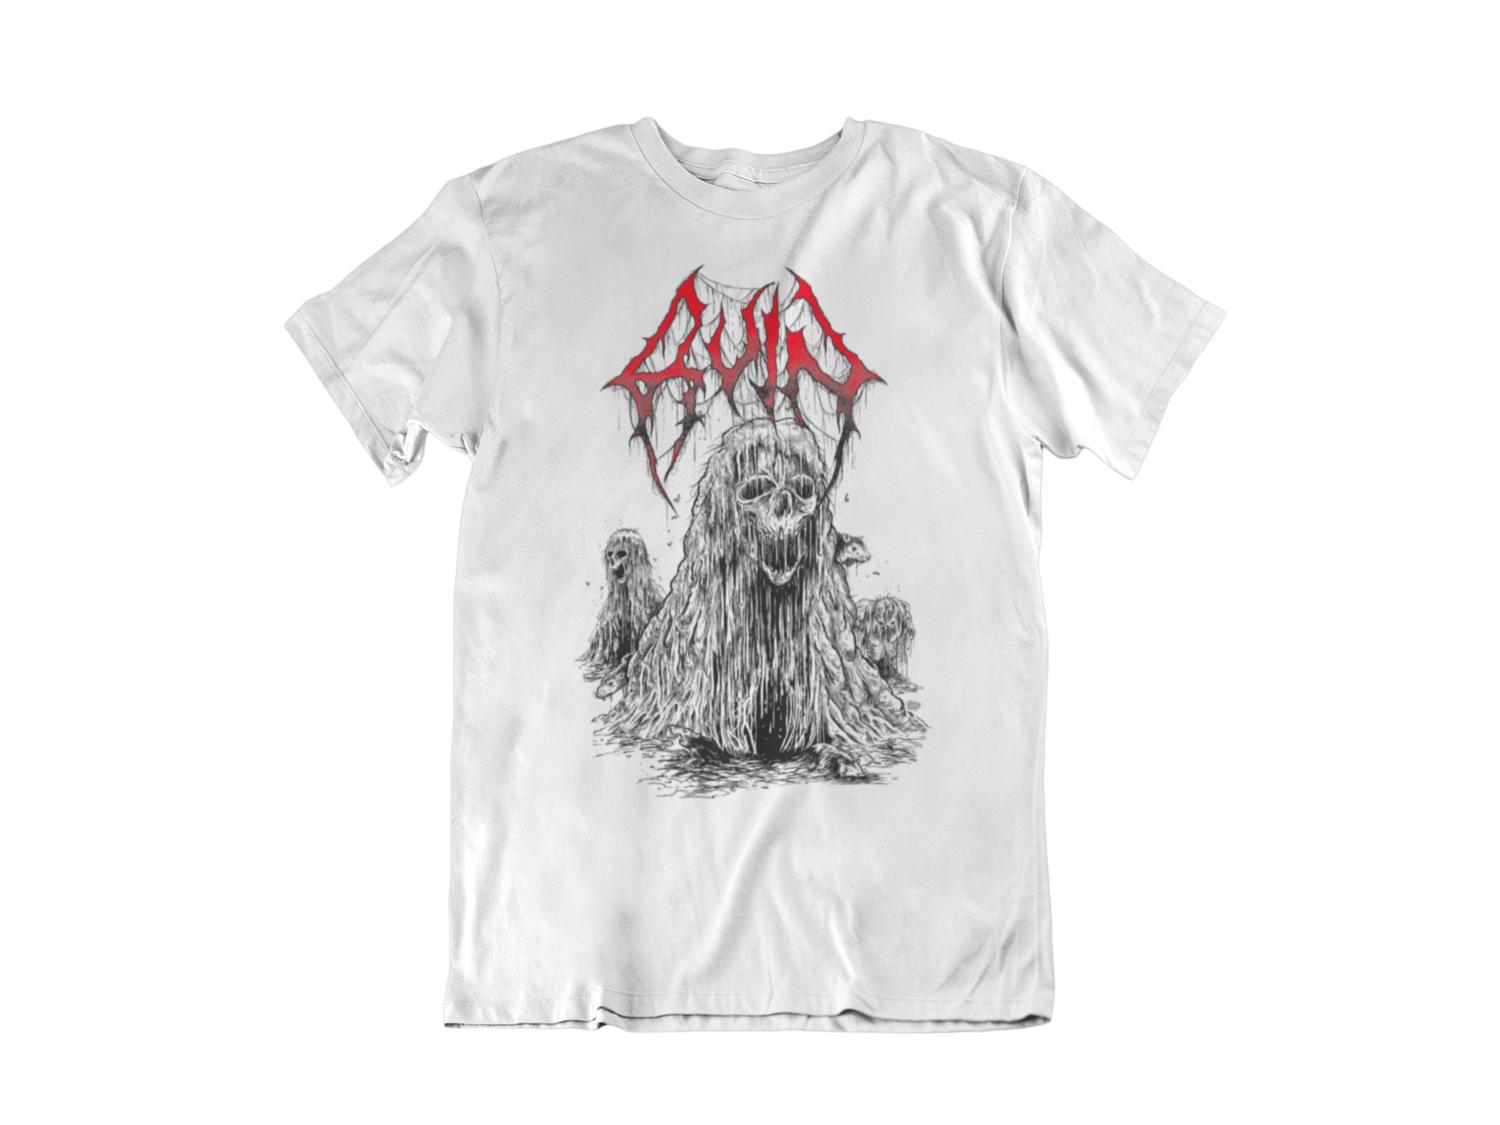 RUIN T-SHIRT MAN BLOOD HARVEST RECORDS